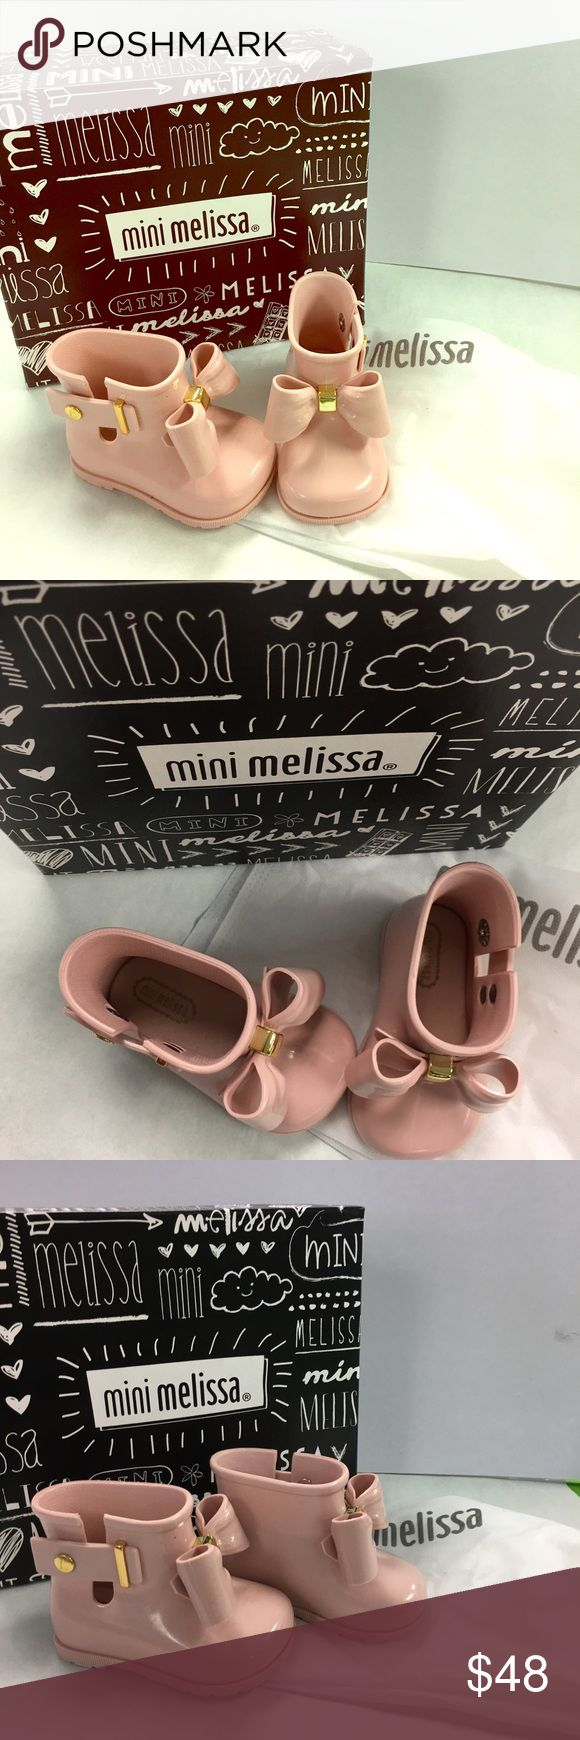 Mini Melissa toddler sz 5 lt pink  Bow Rainboot Never been worn, new with box and shoe bag! Authentic Mini Melissa sz toddler 5. Selling due to store overstock! Mini Melissa Shoes Rain & Snow Boots